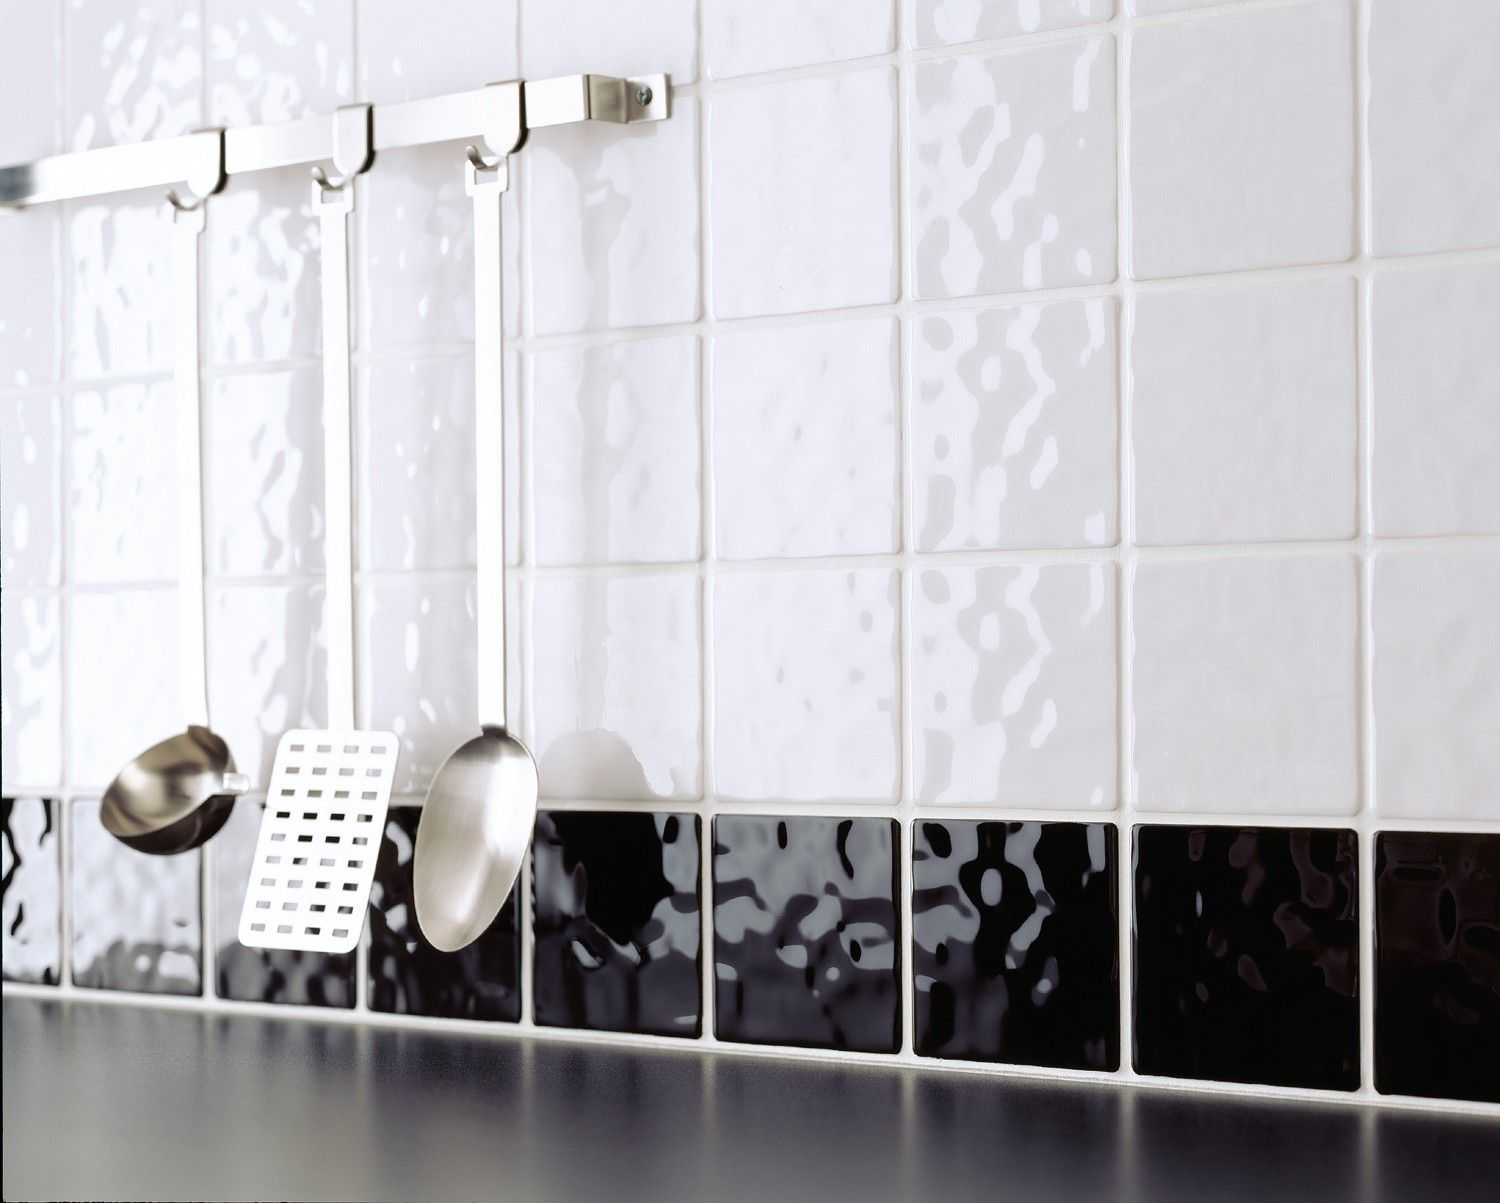 The Apeadero Blanco Tile Is A Small 10x10cm Tile Which Has A Glossy Finish And A Hammered Bumpy Effect Which Looks Restroom Tile Wall Tiles Kitchen Wall Tiles